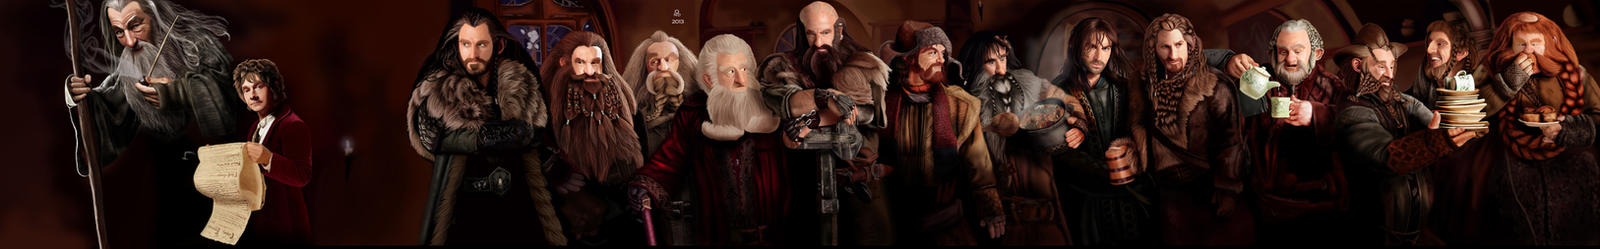 The Hobbit : Thorin Oakenshield's Company by Ondjage